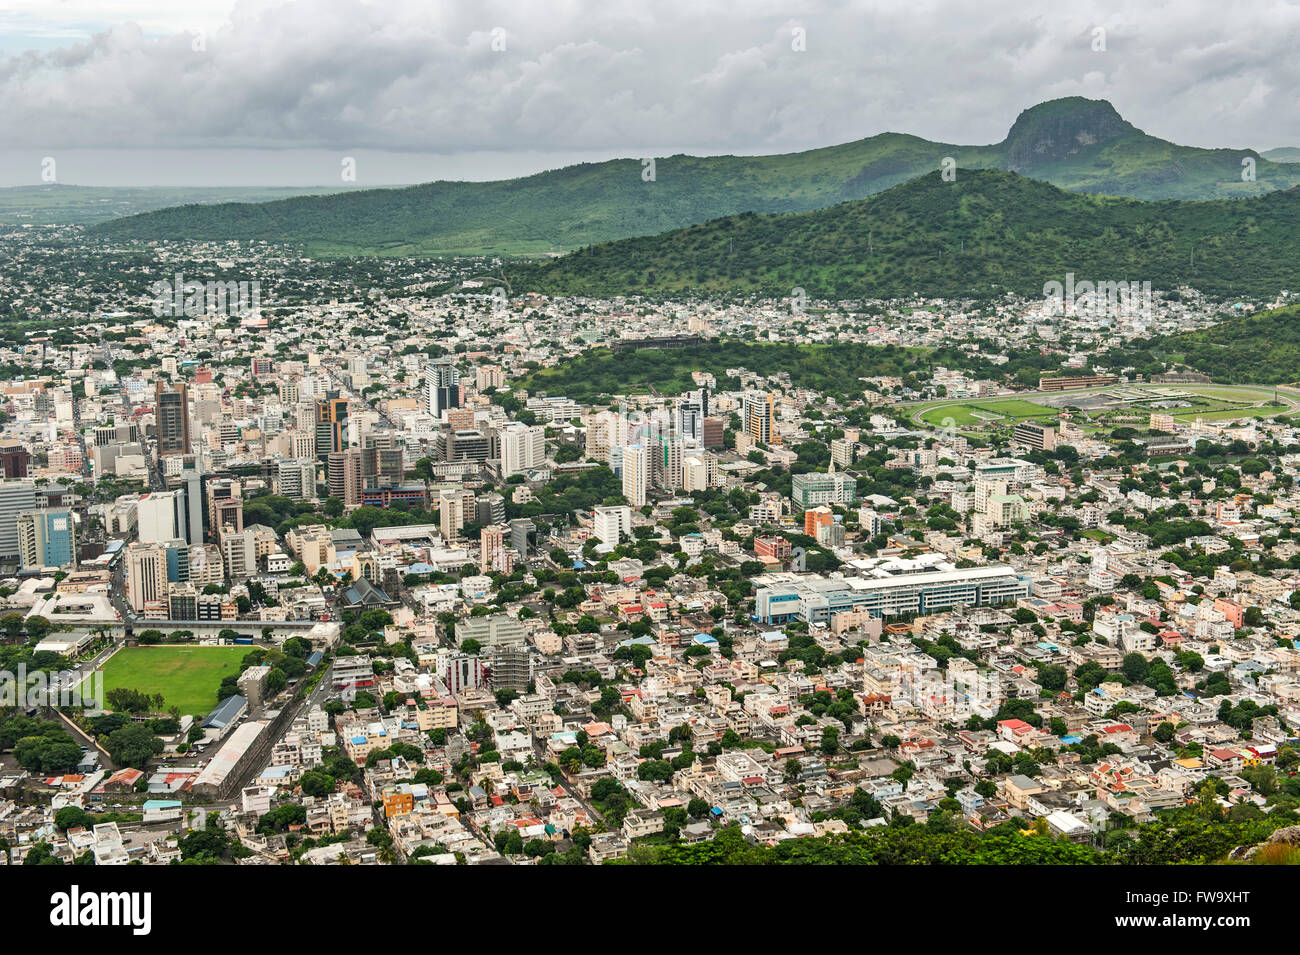 View across Port Louis, the capital of Mauritius. Stock Photo